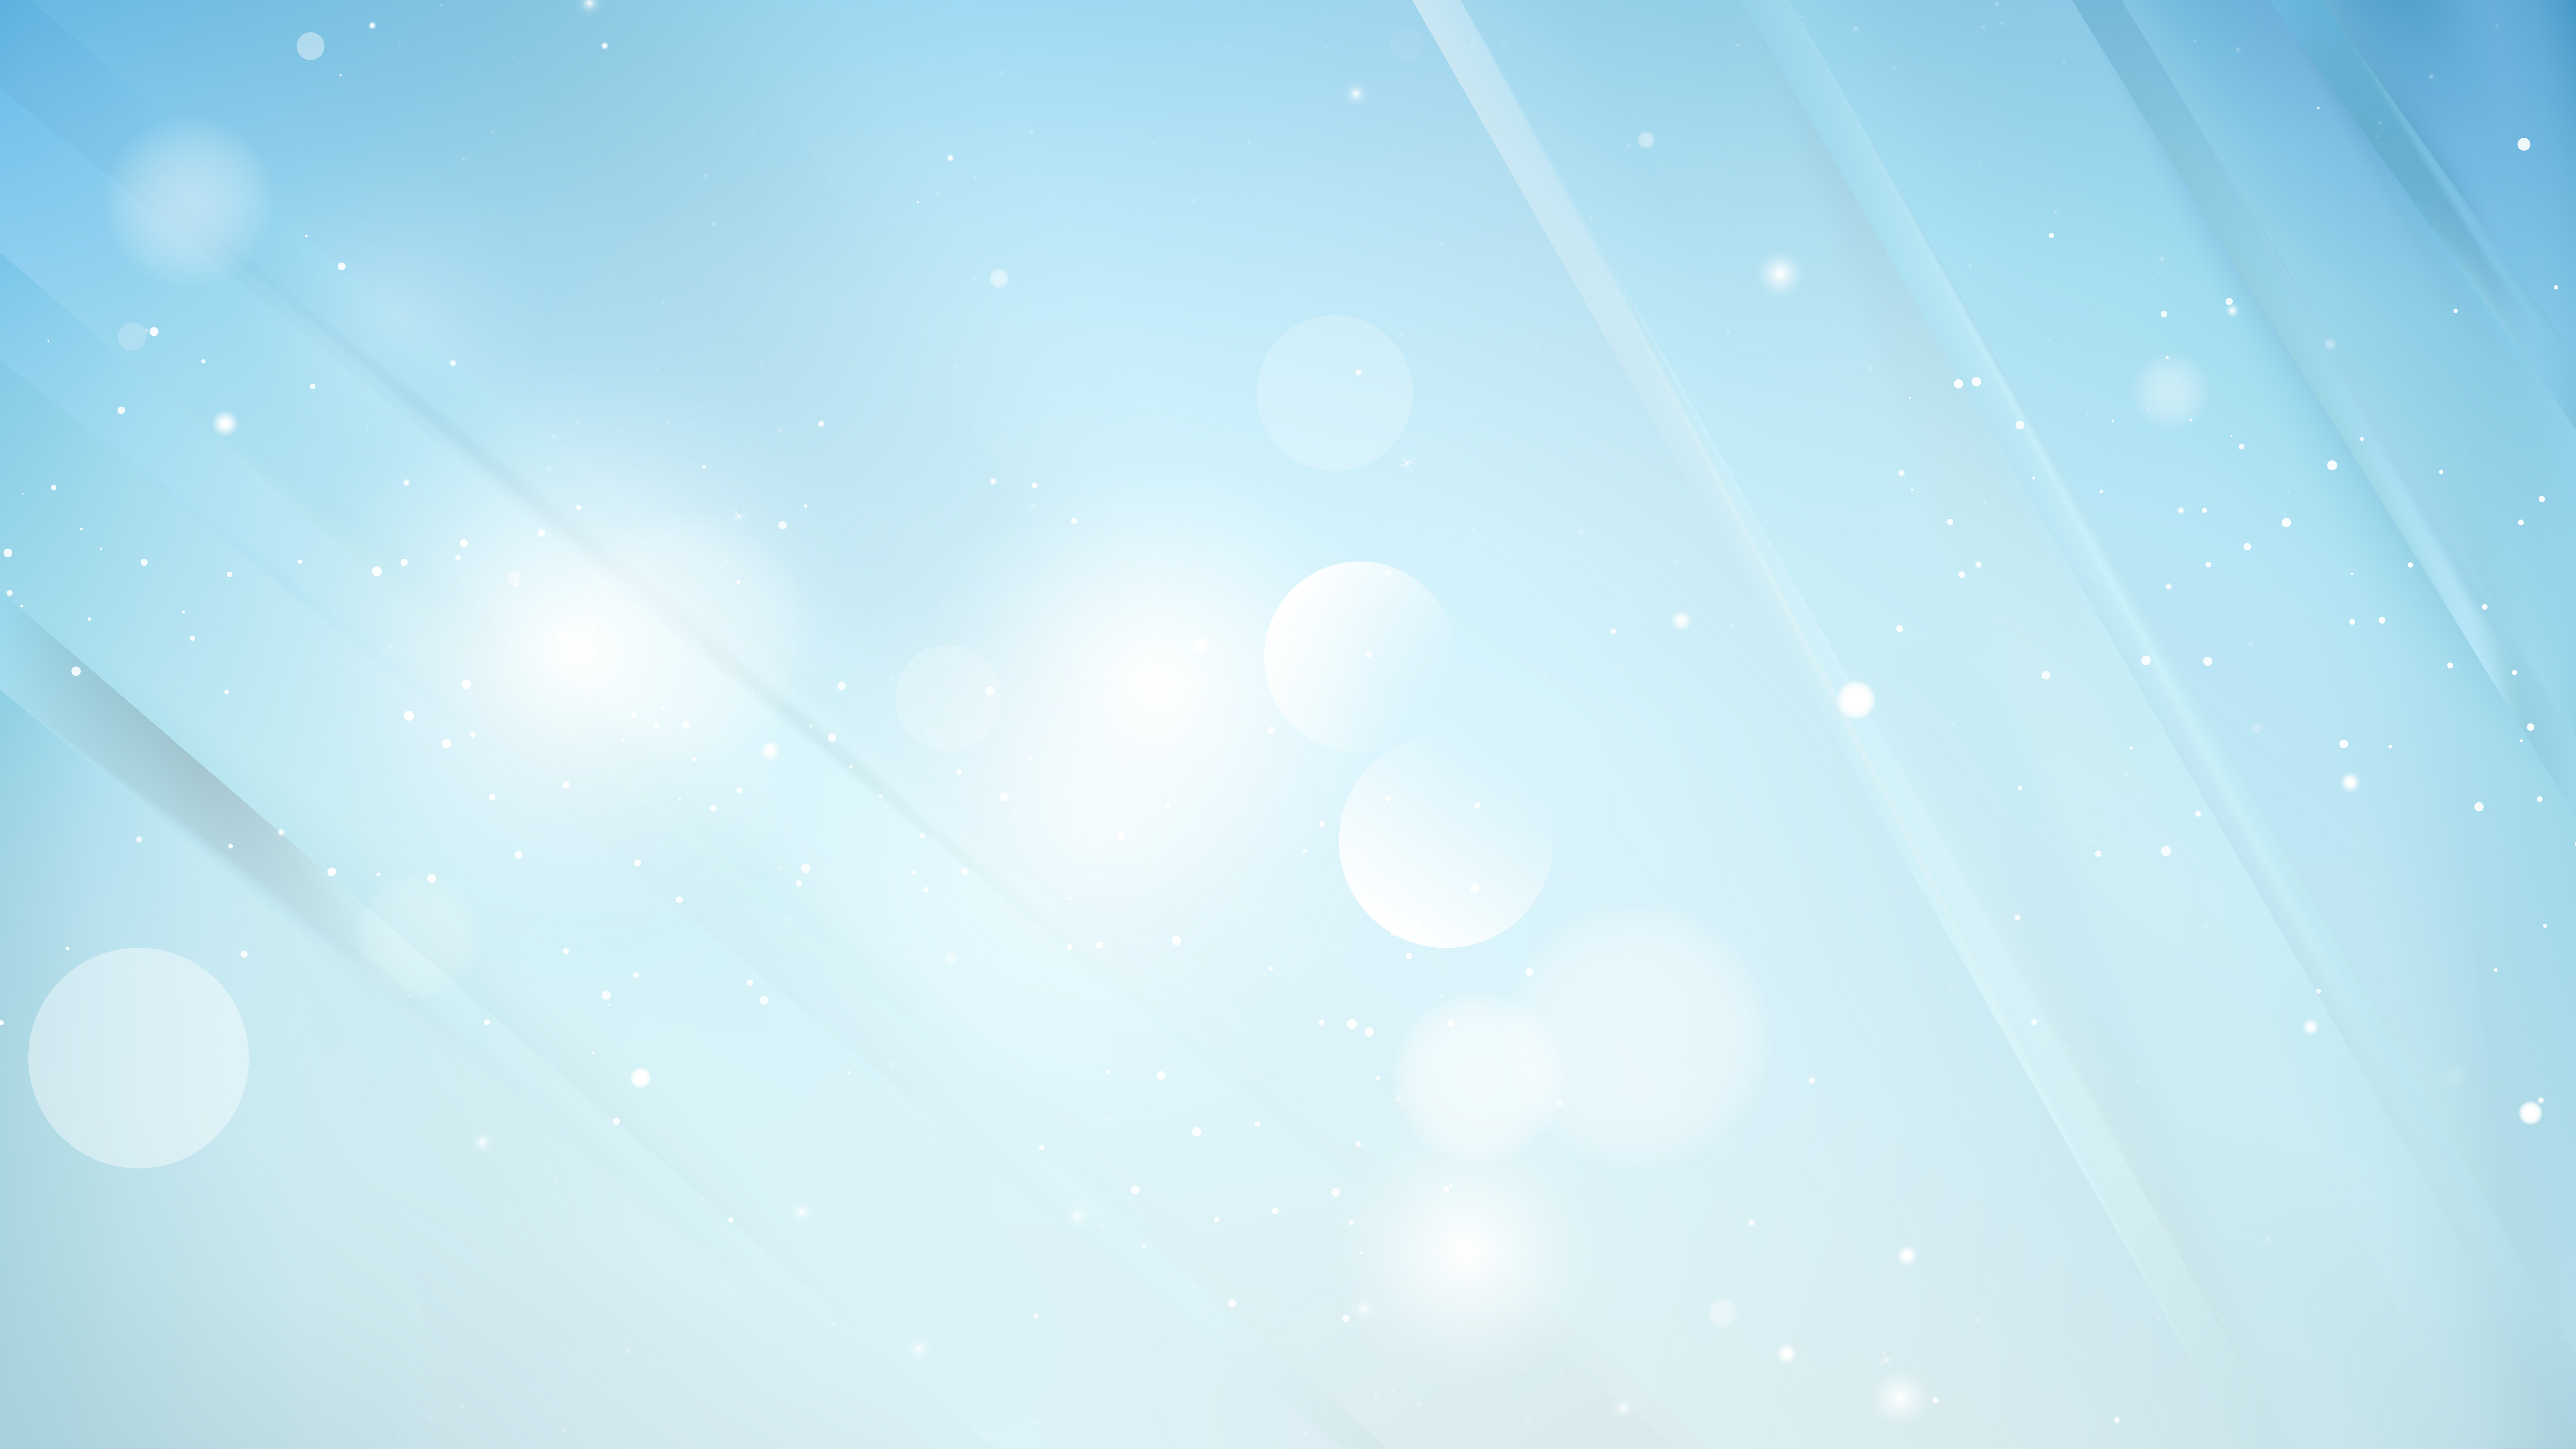 8000x4500 - Baby Background Pictures 15